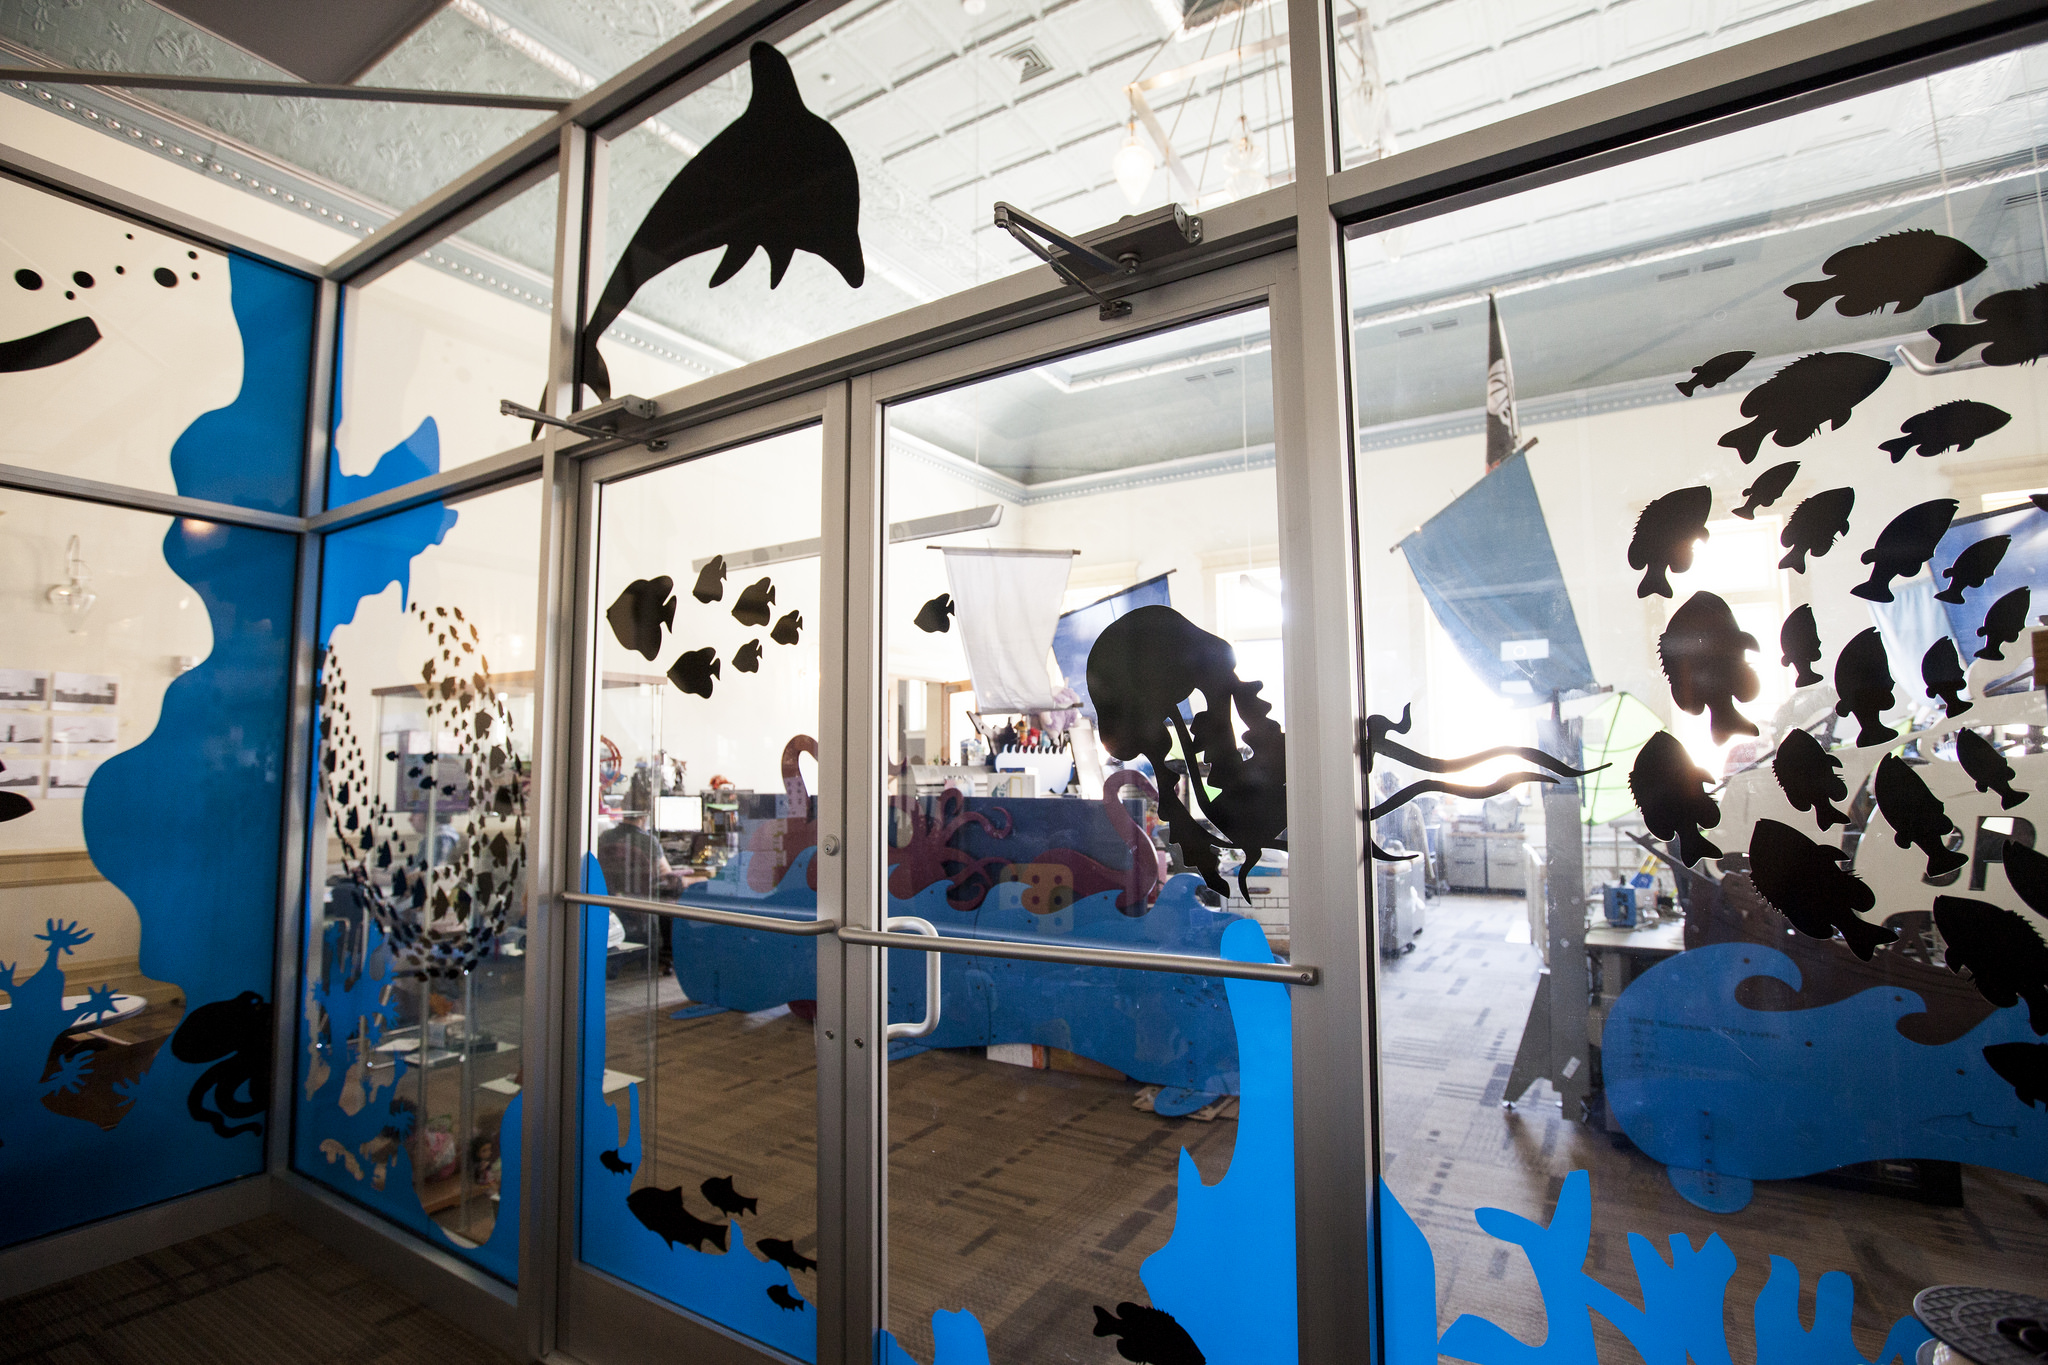 In the center of the open office stands a meeting room with all glass walls that was referred to as 'the fish tank'. We playfully covered it with an under water theme of fish, coral and divers. The vinyl application adds a need privacy to the meeting room.